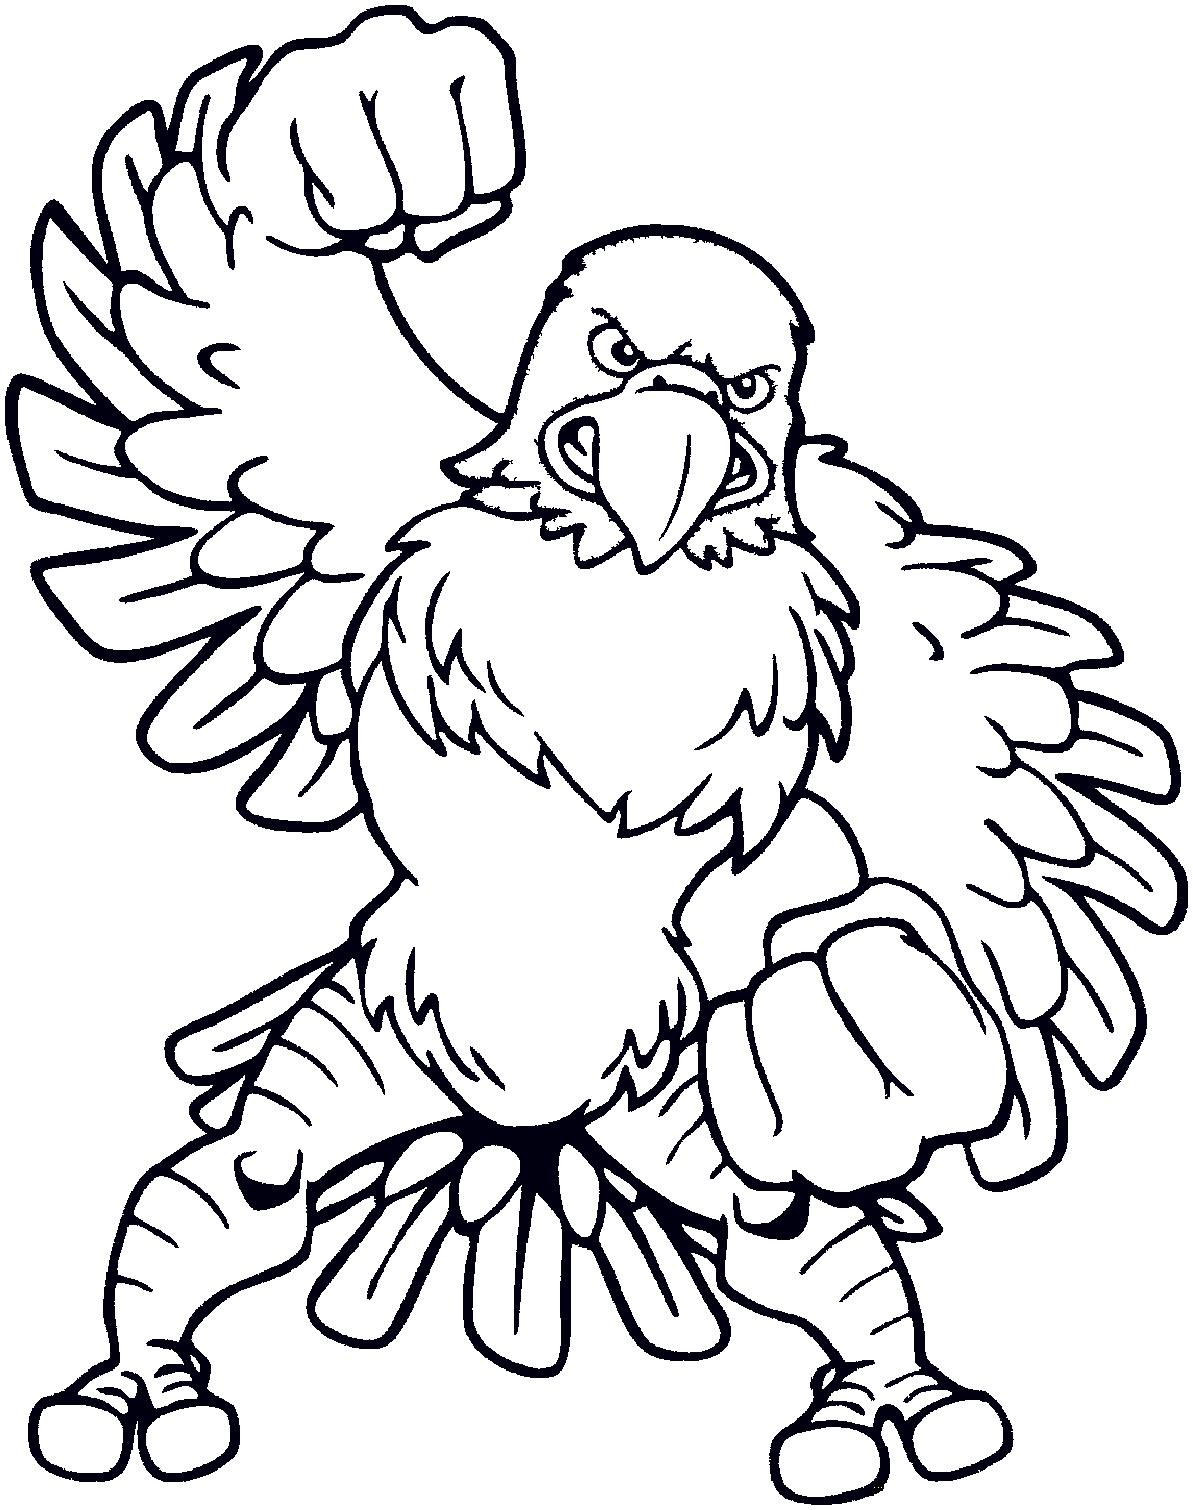 Eagle Coloring Pages For Kids Clipart Best